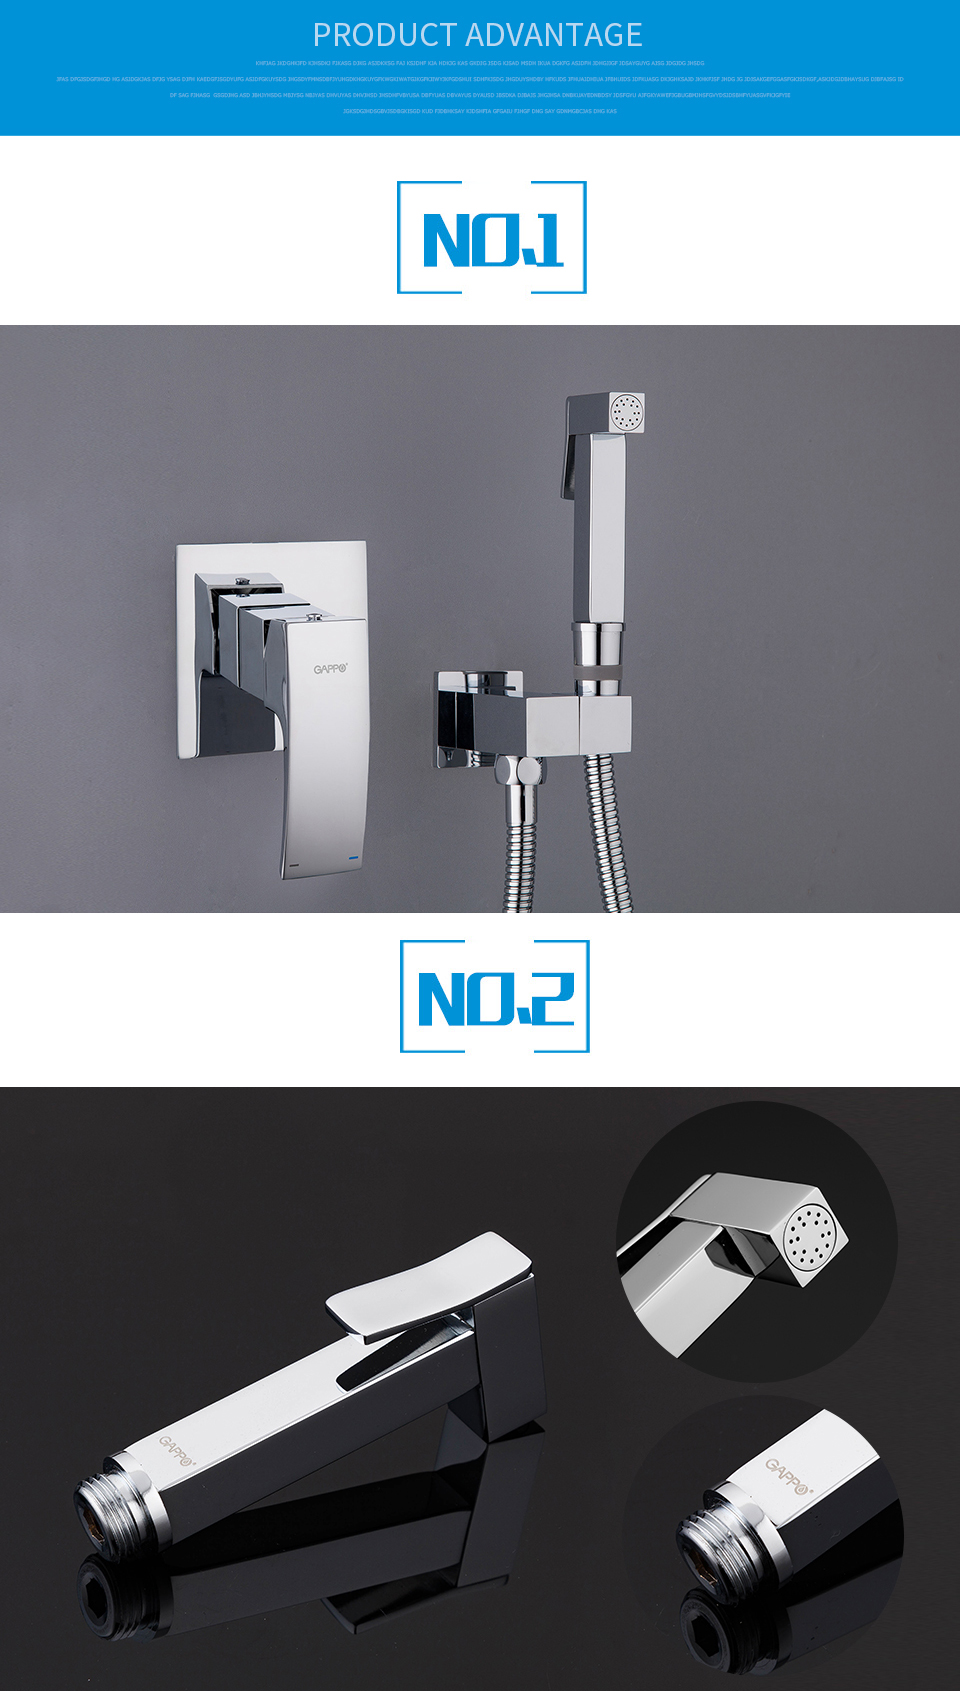 Aluminum Universal Bathroom Shower Head Holder Adjustable Bracket Suction EA7X